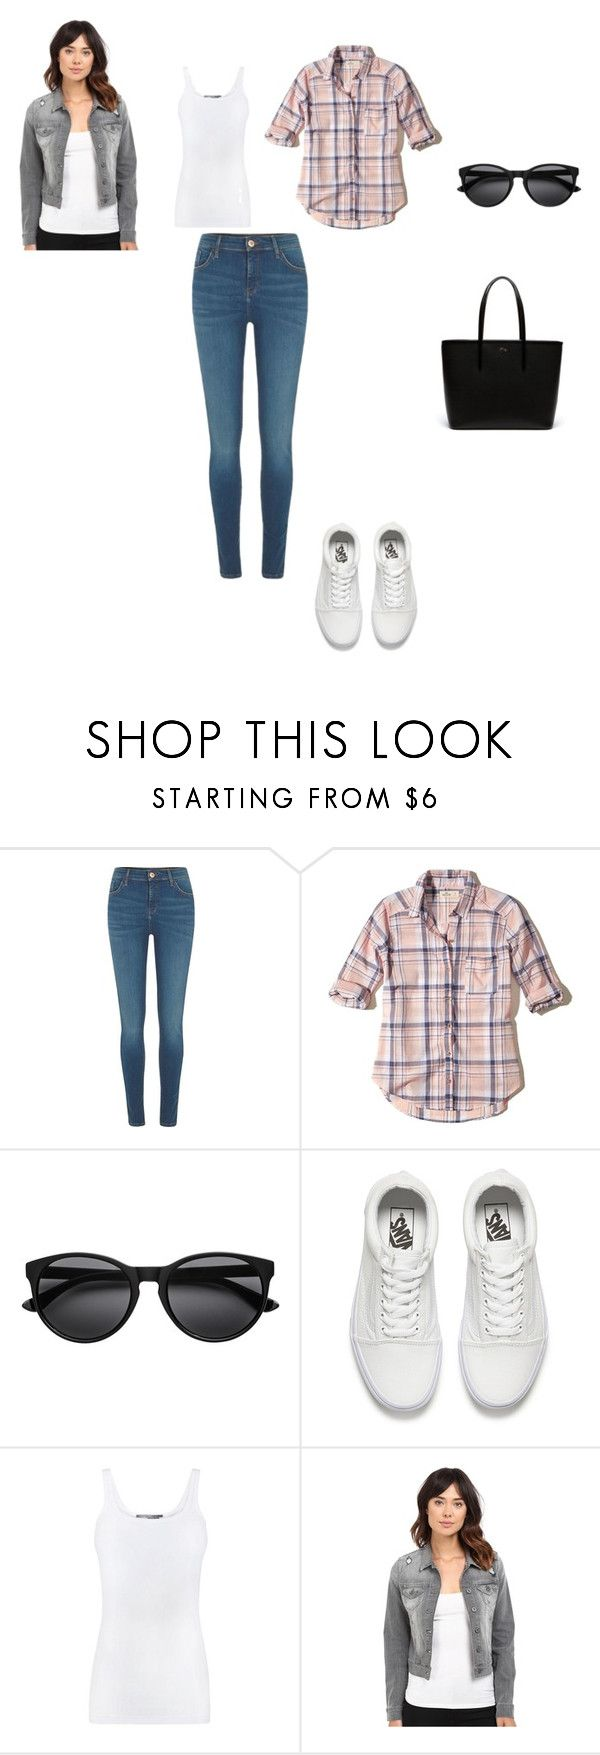 """PIC NIC 38 AÑOS"" by marisuv on Polyvore featuring moda, River Island, Hollister Co., Vans, Vince, Mavi y Lacoste"